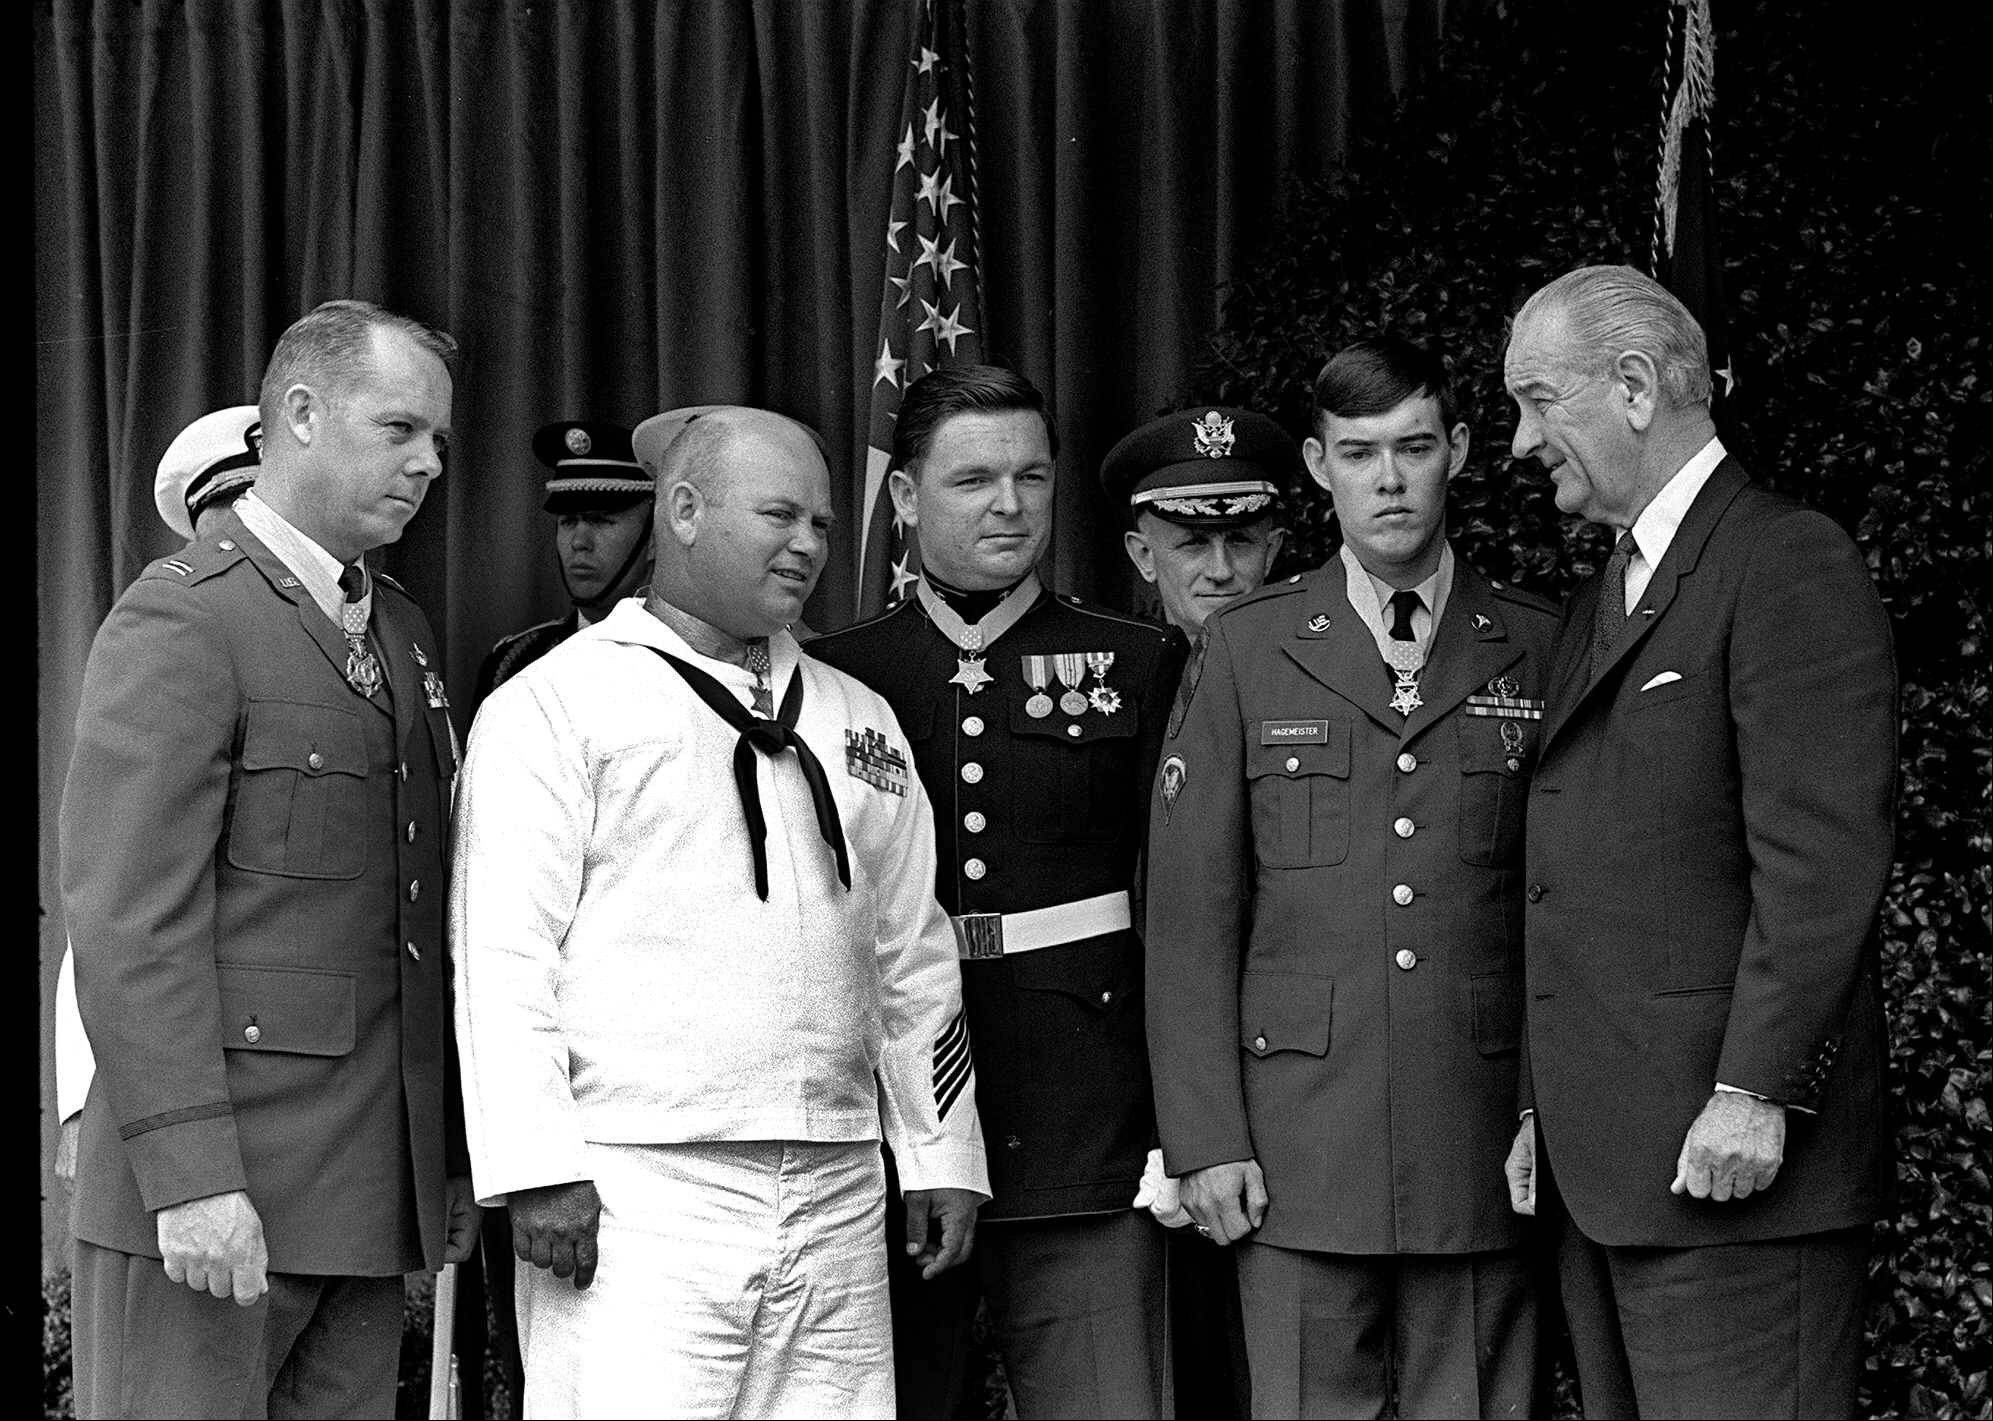 In this May 14, 1968, photo, President Lyndon Johnson, right, poses at the White House with four winners of the nation's highest award, the Medal of Honor. Decorated for valor in Vietnam, they are, from left: Air Force Capt. Gerald O. Young, Navy Bosn's Mate James E. Williams, Marine Sgt. Richard A. Pittman and Army Spc. 5 Charles C. Hagmeister